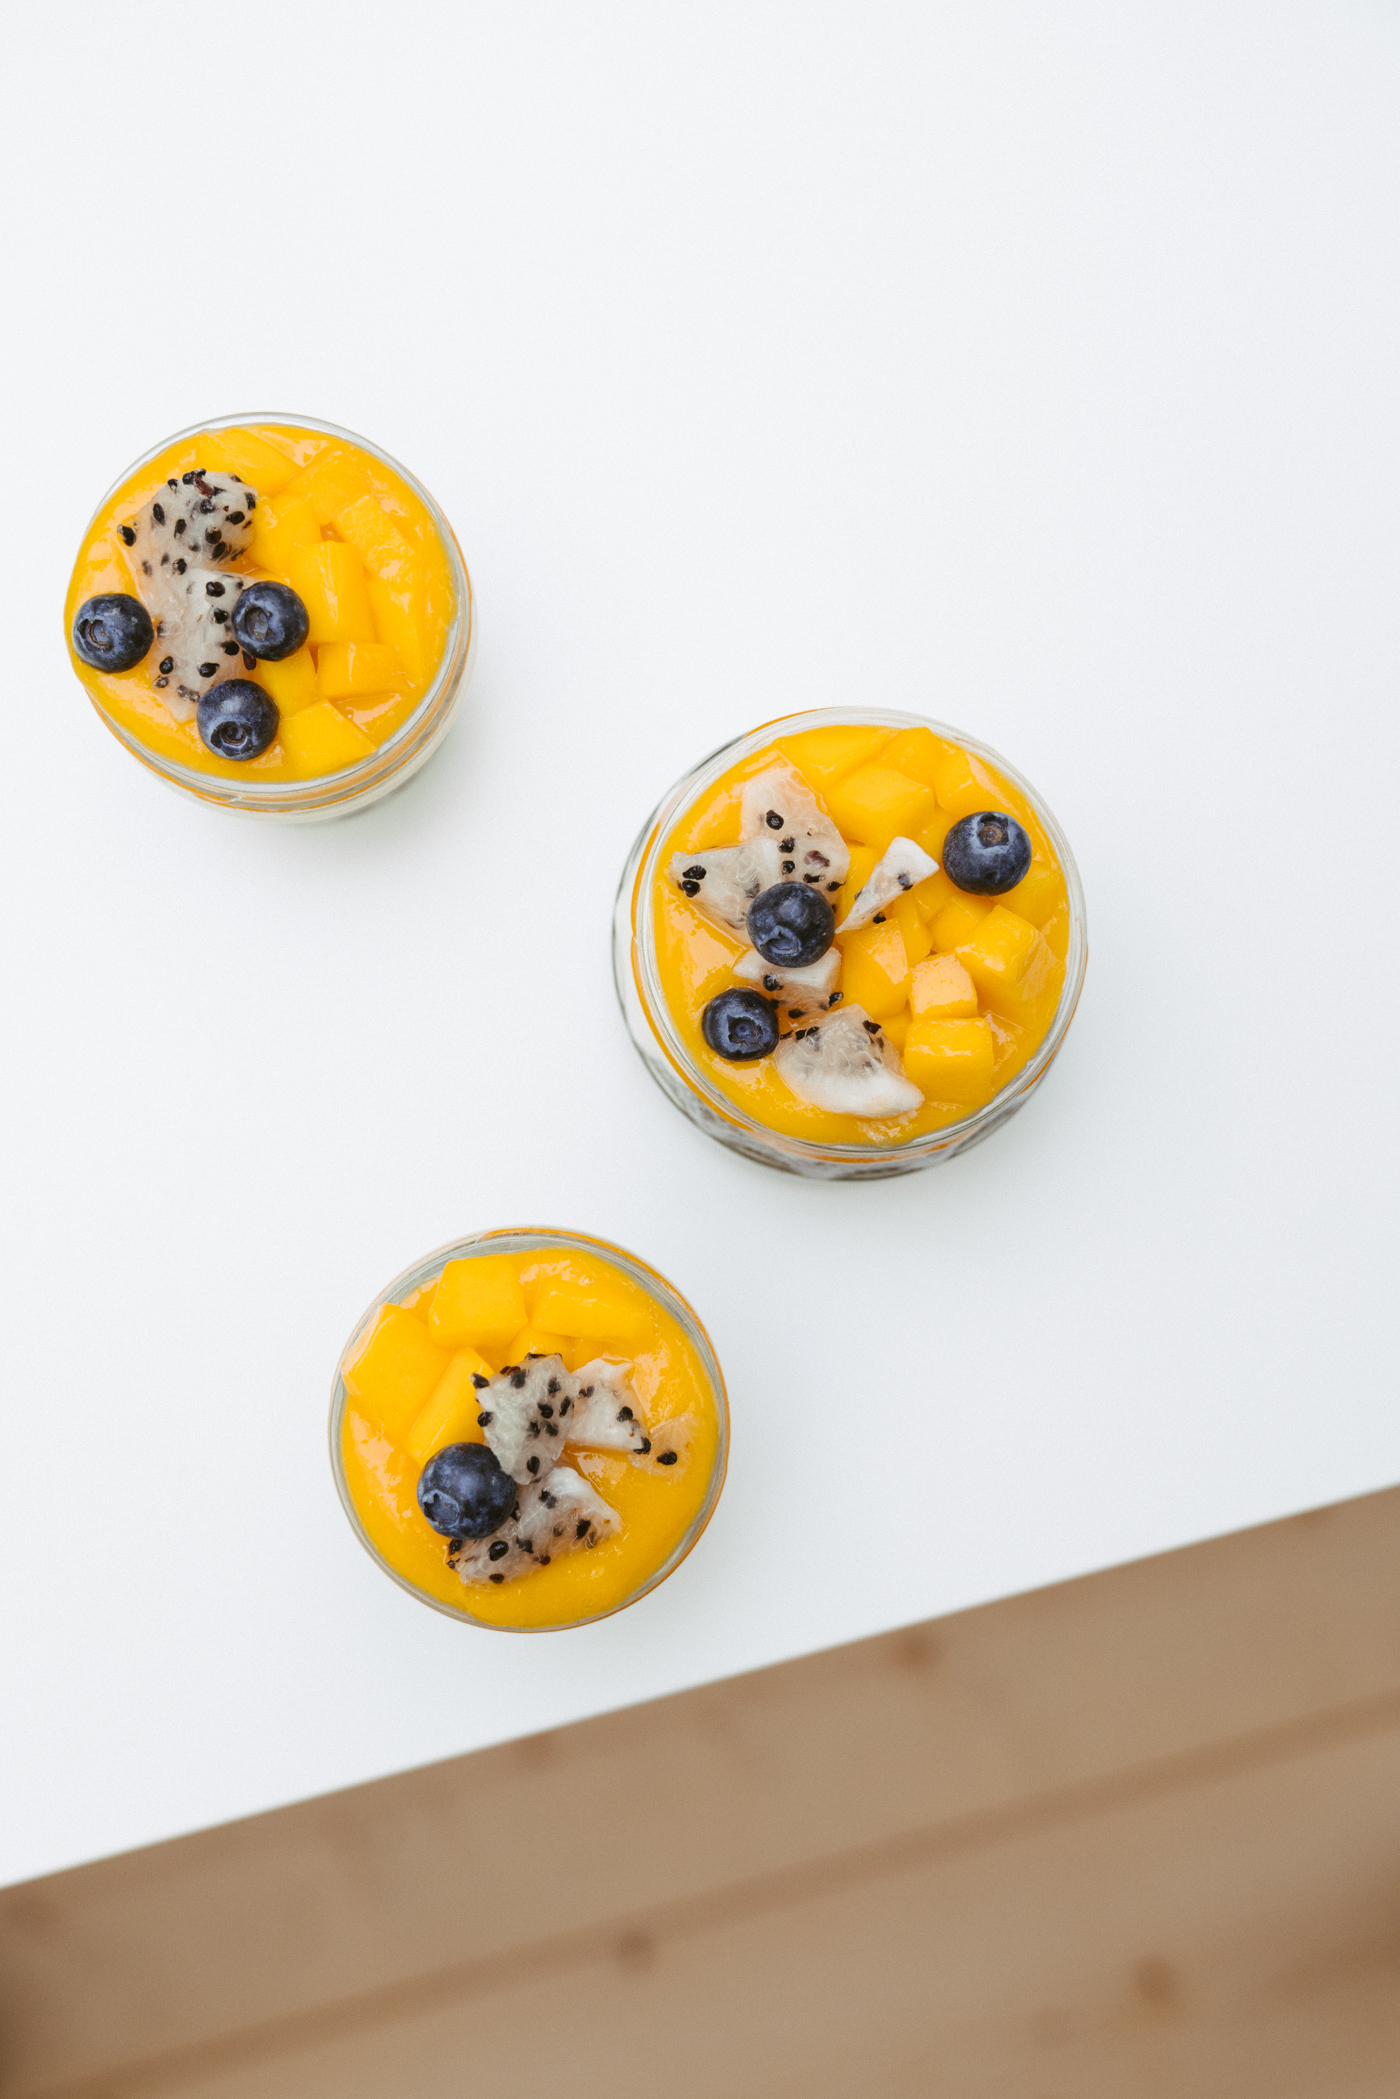 mango_passionfruit_chia_and_yoghurt_jars-7.jpg